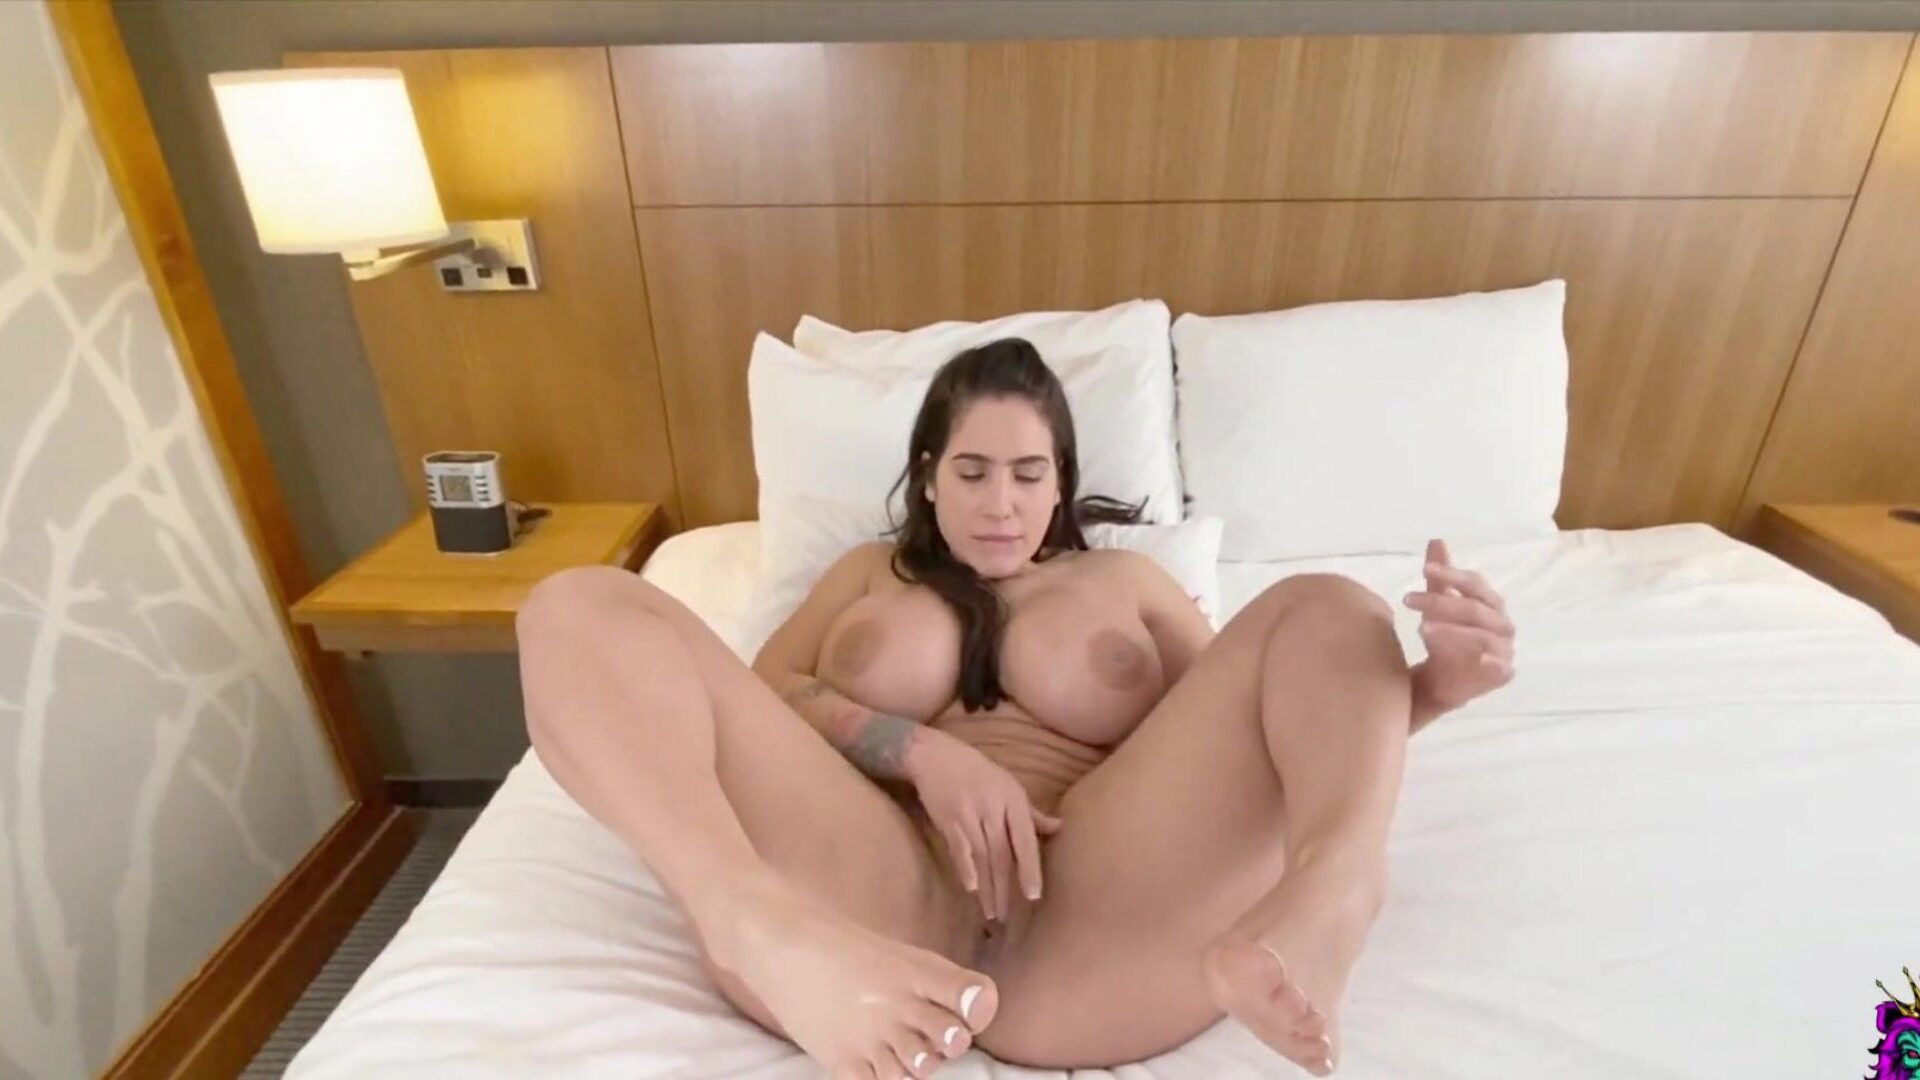 Big Tits mother I'd like to fuck Licks her own Feet when this babe Feels a Dick inwards her Pussy